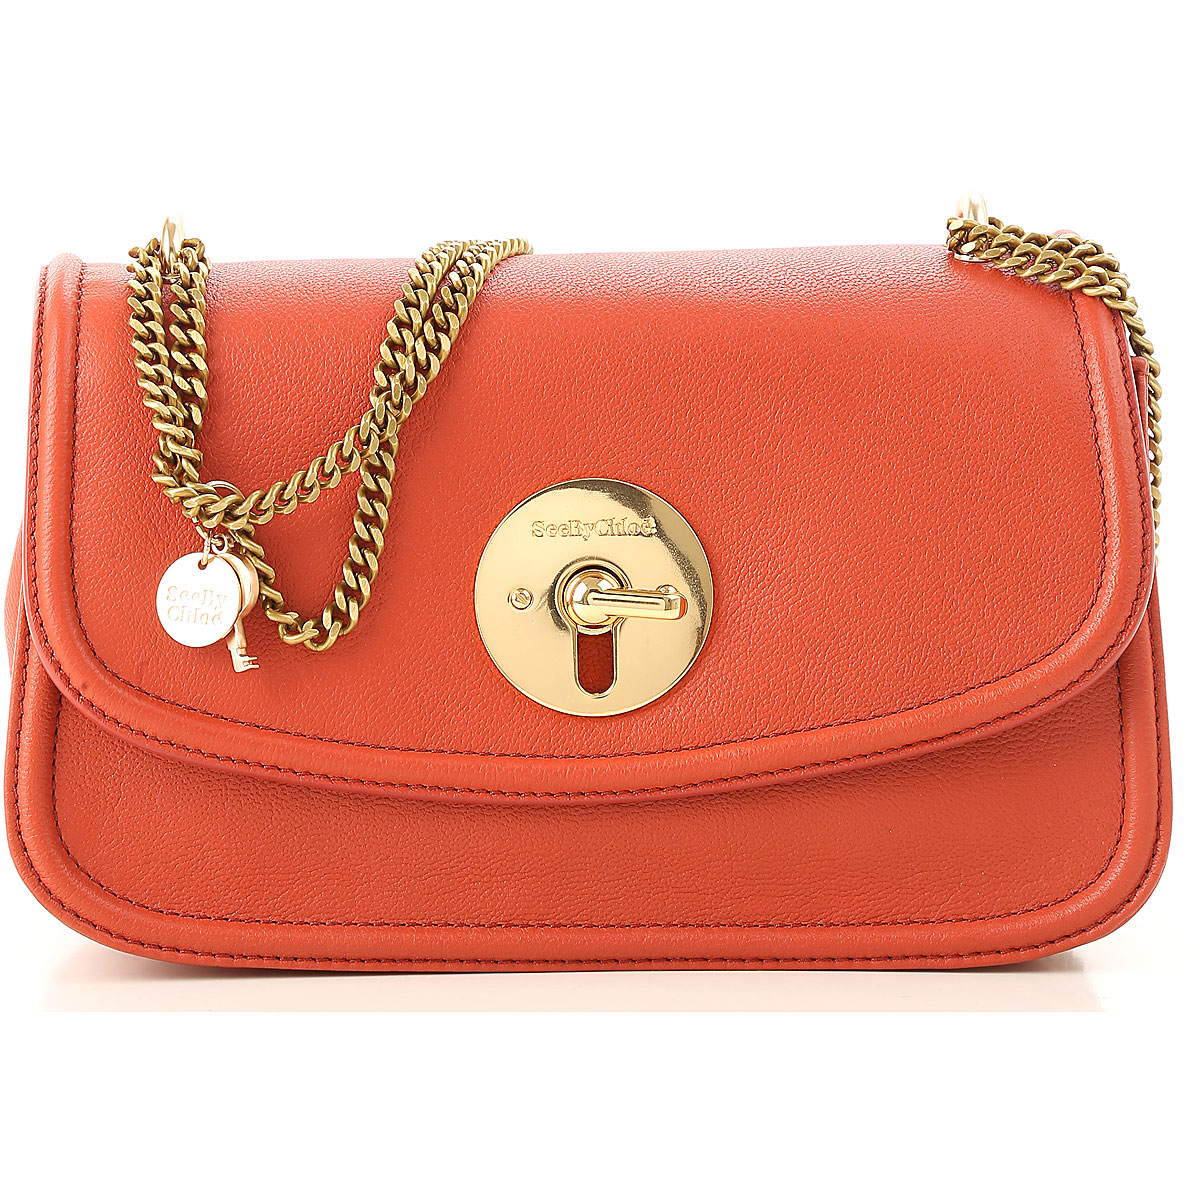 Image of See By Chloe Shoulder Bag for Women, Red, Leather, 2017